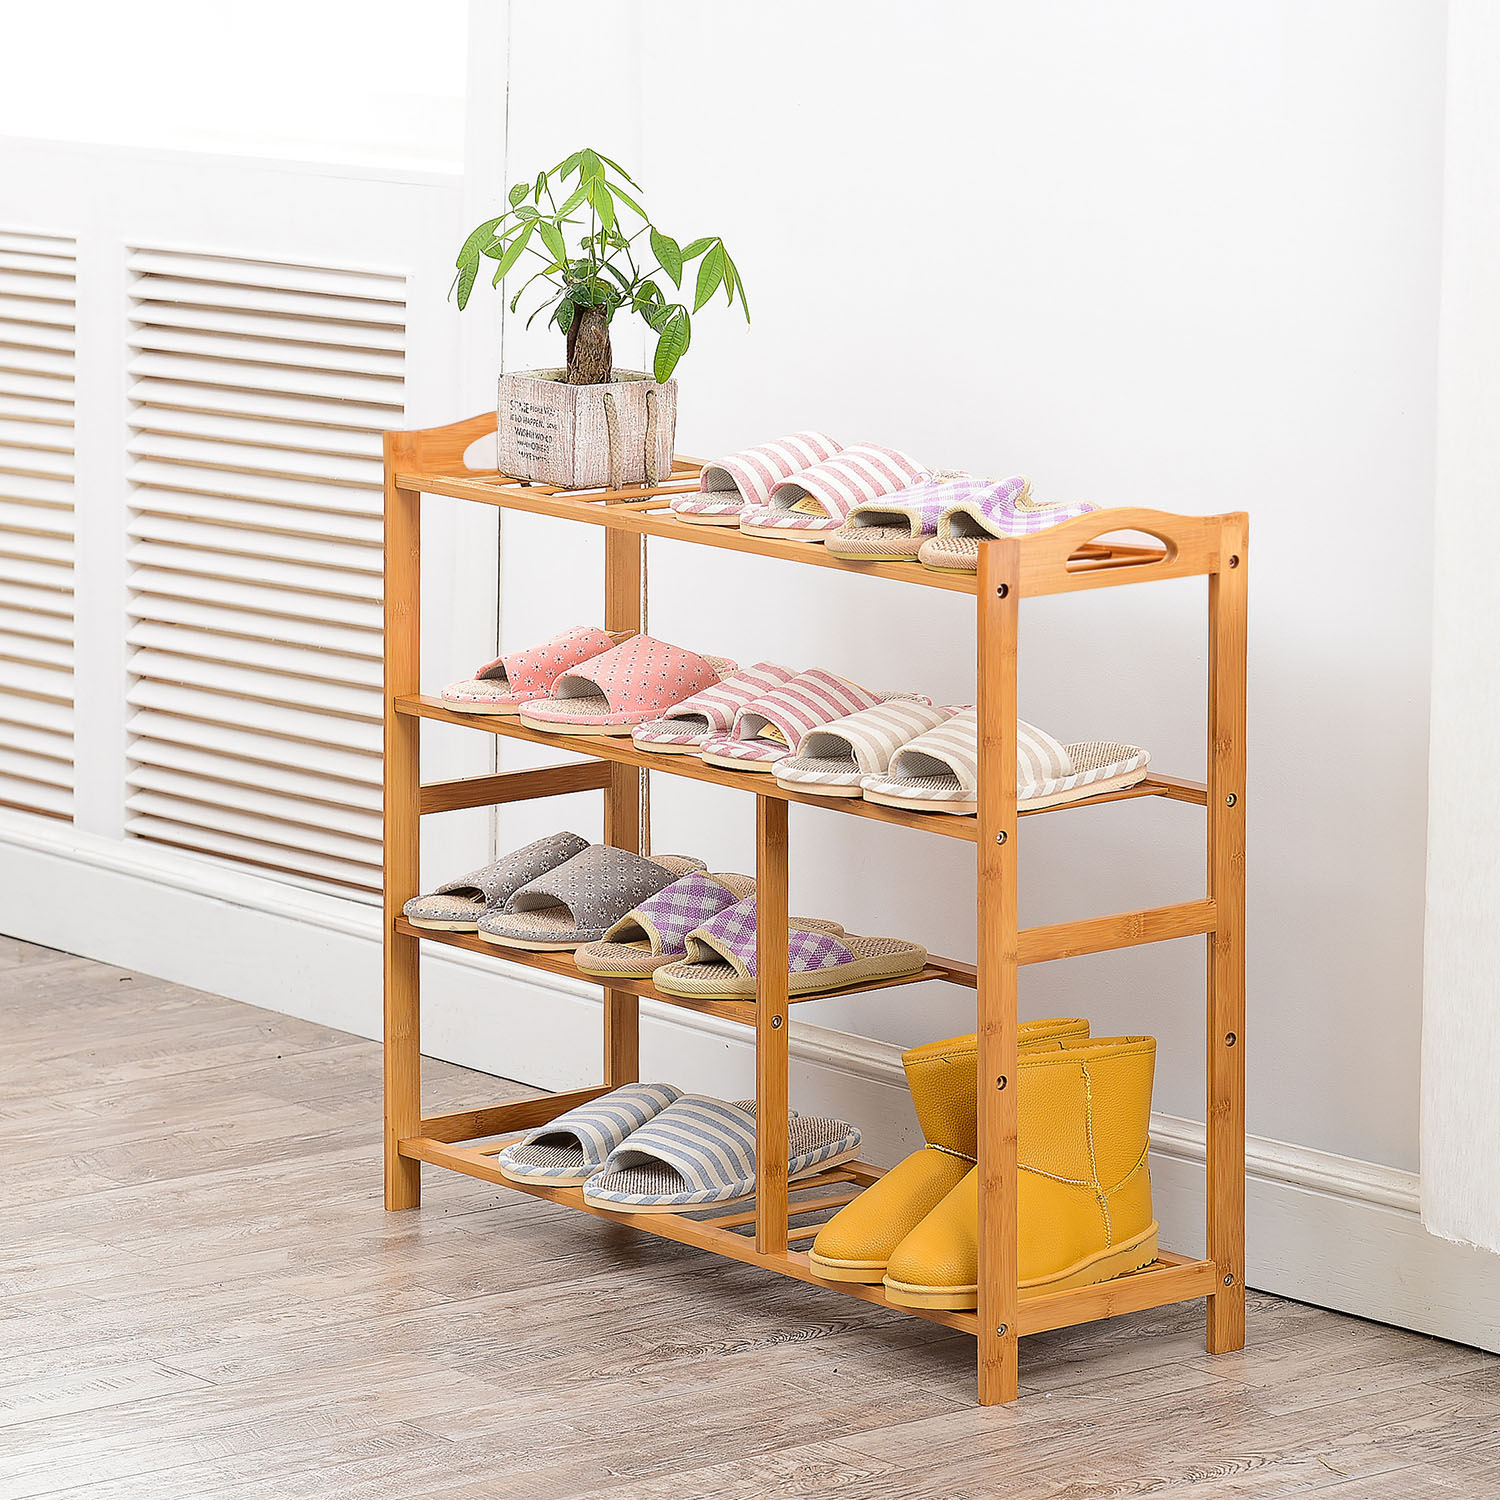 Allieroo Bamboo 4 Tier Shoe Rack Entryway Shoe Shelf Holder Storage Organizer Furniture